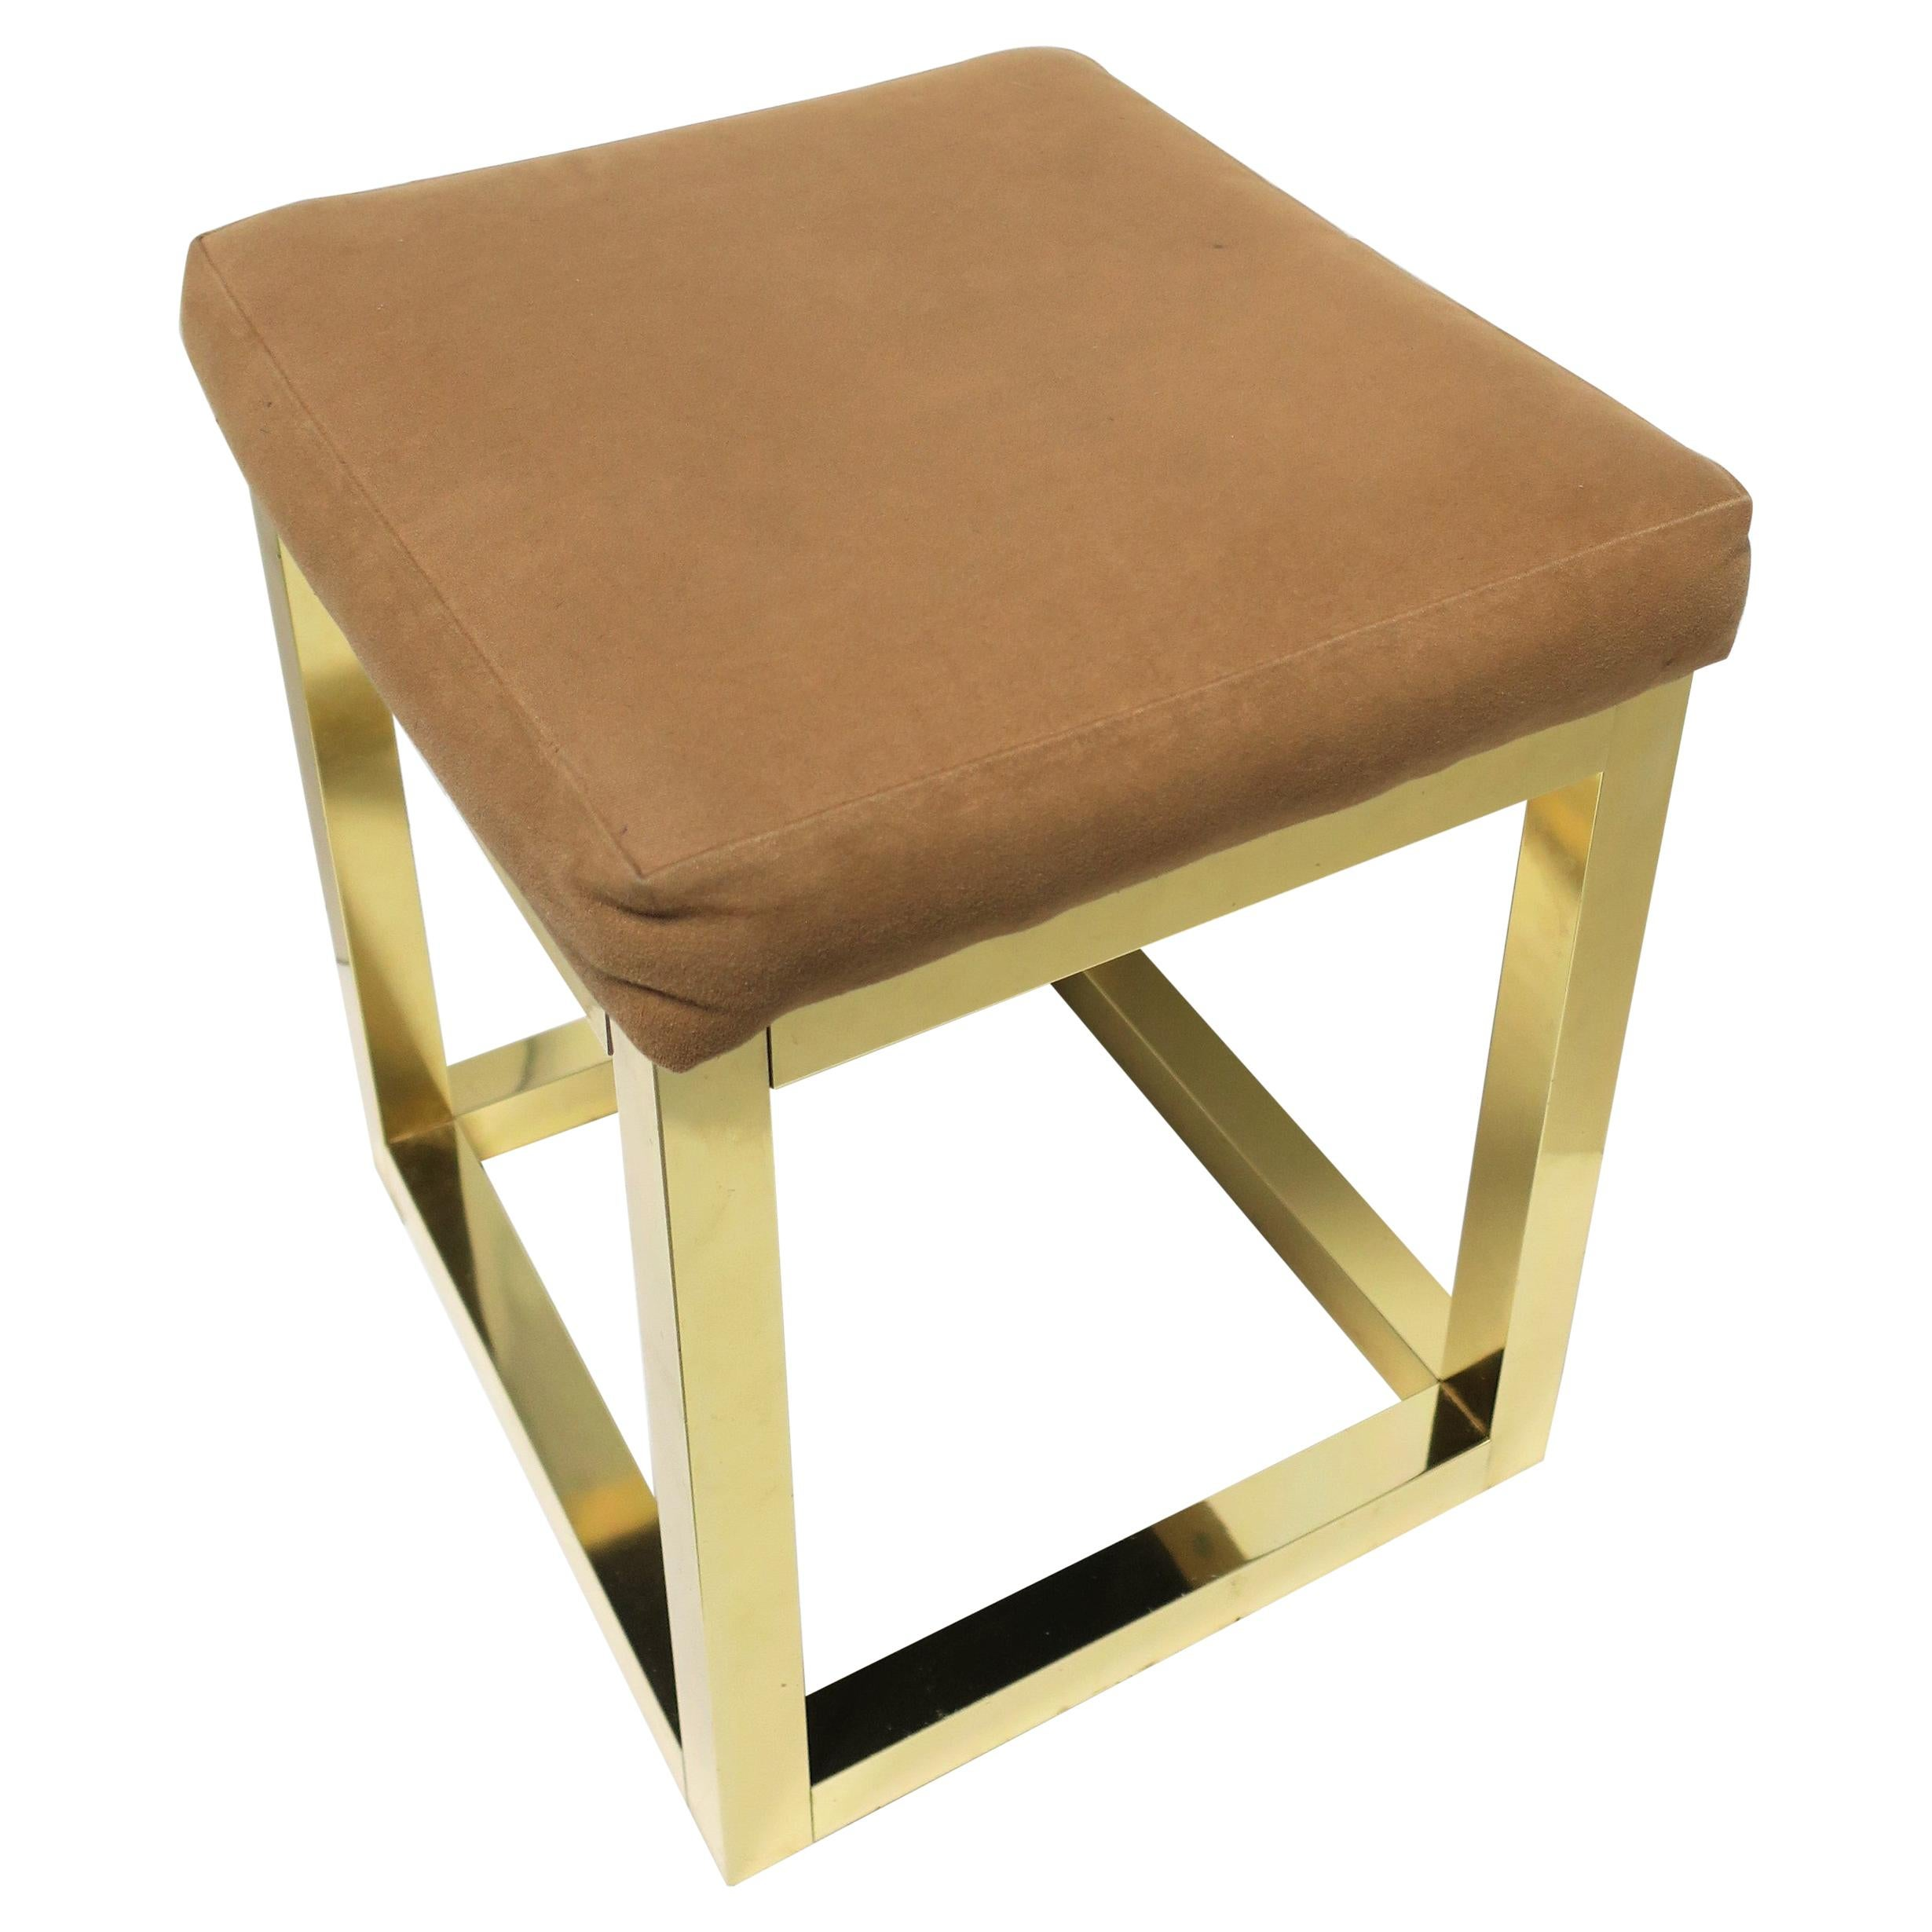 1970s Modern Brass Bench or Stool in the Style of Designer Paul Evans